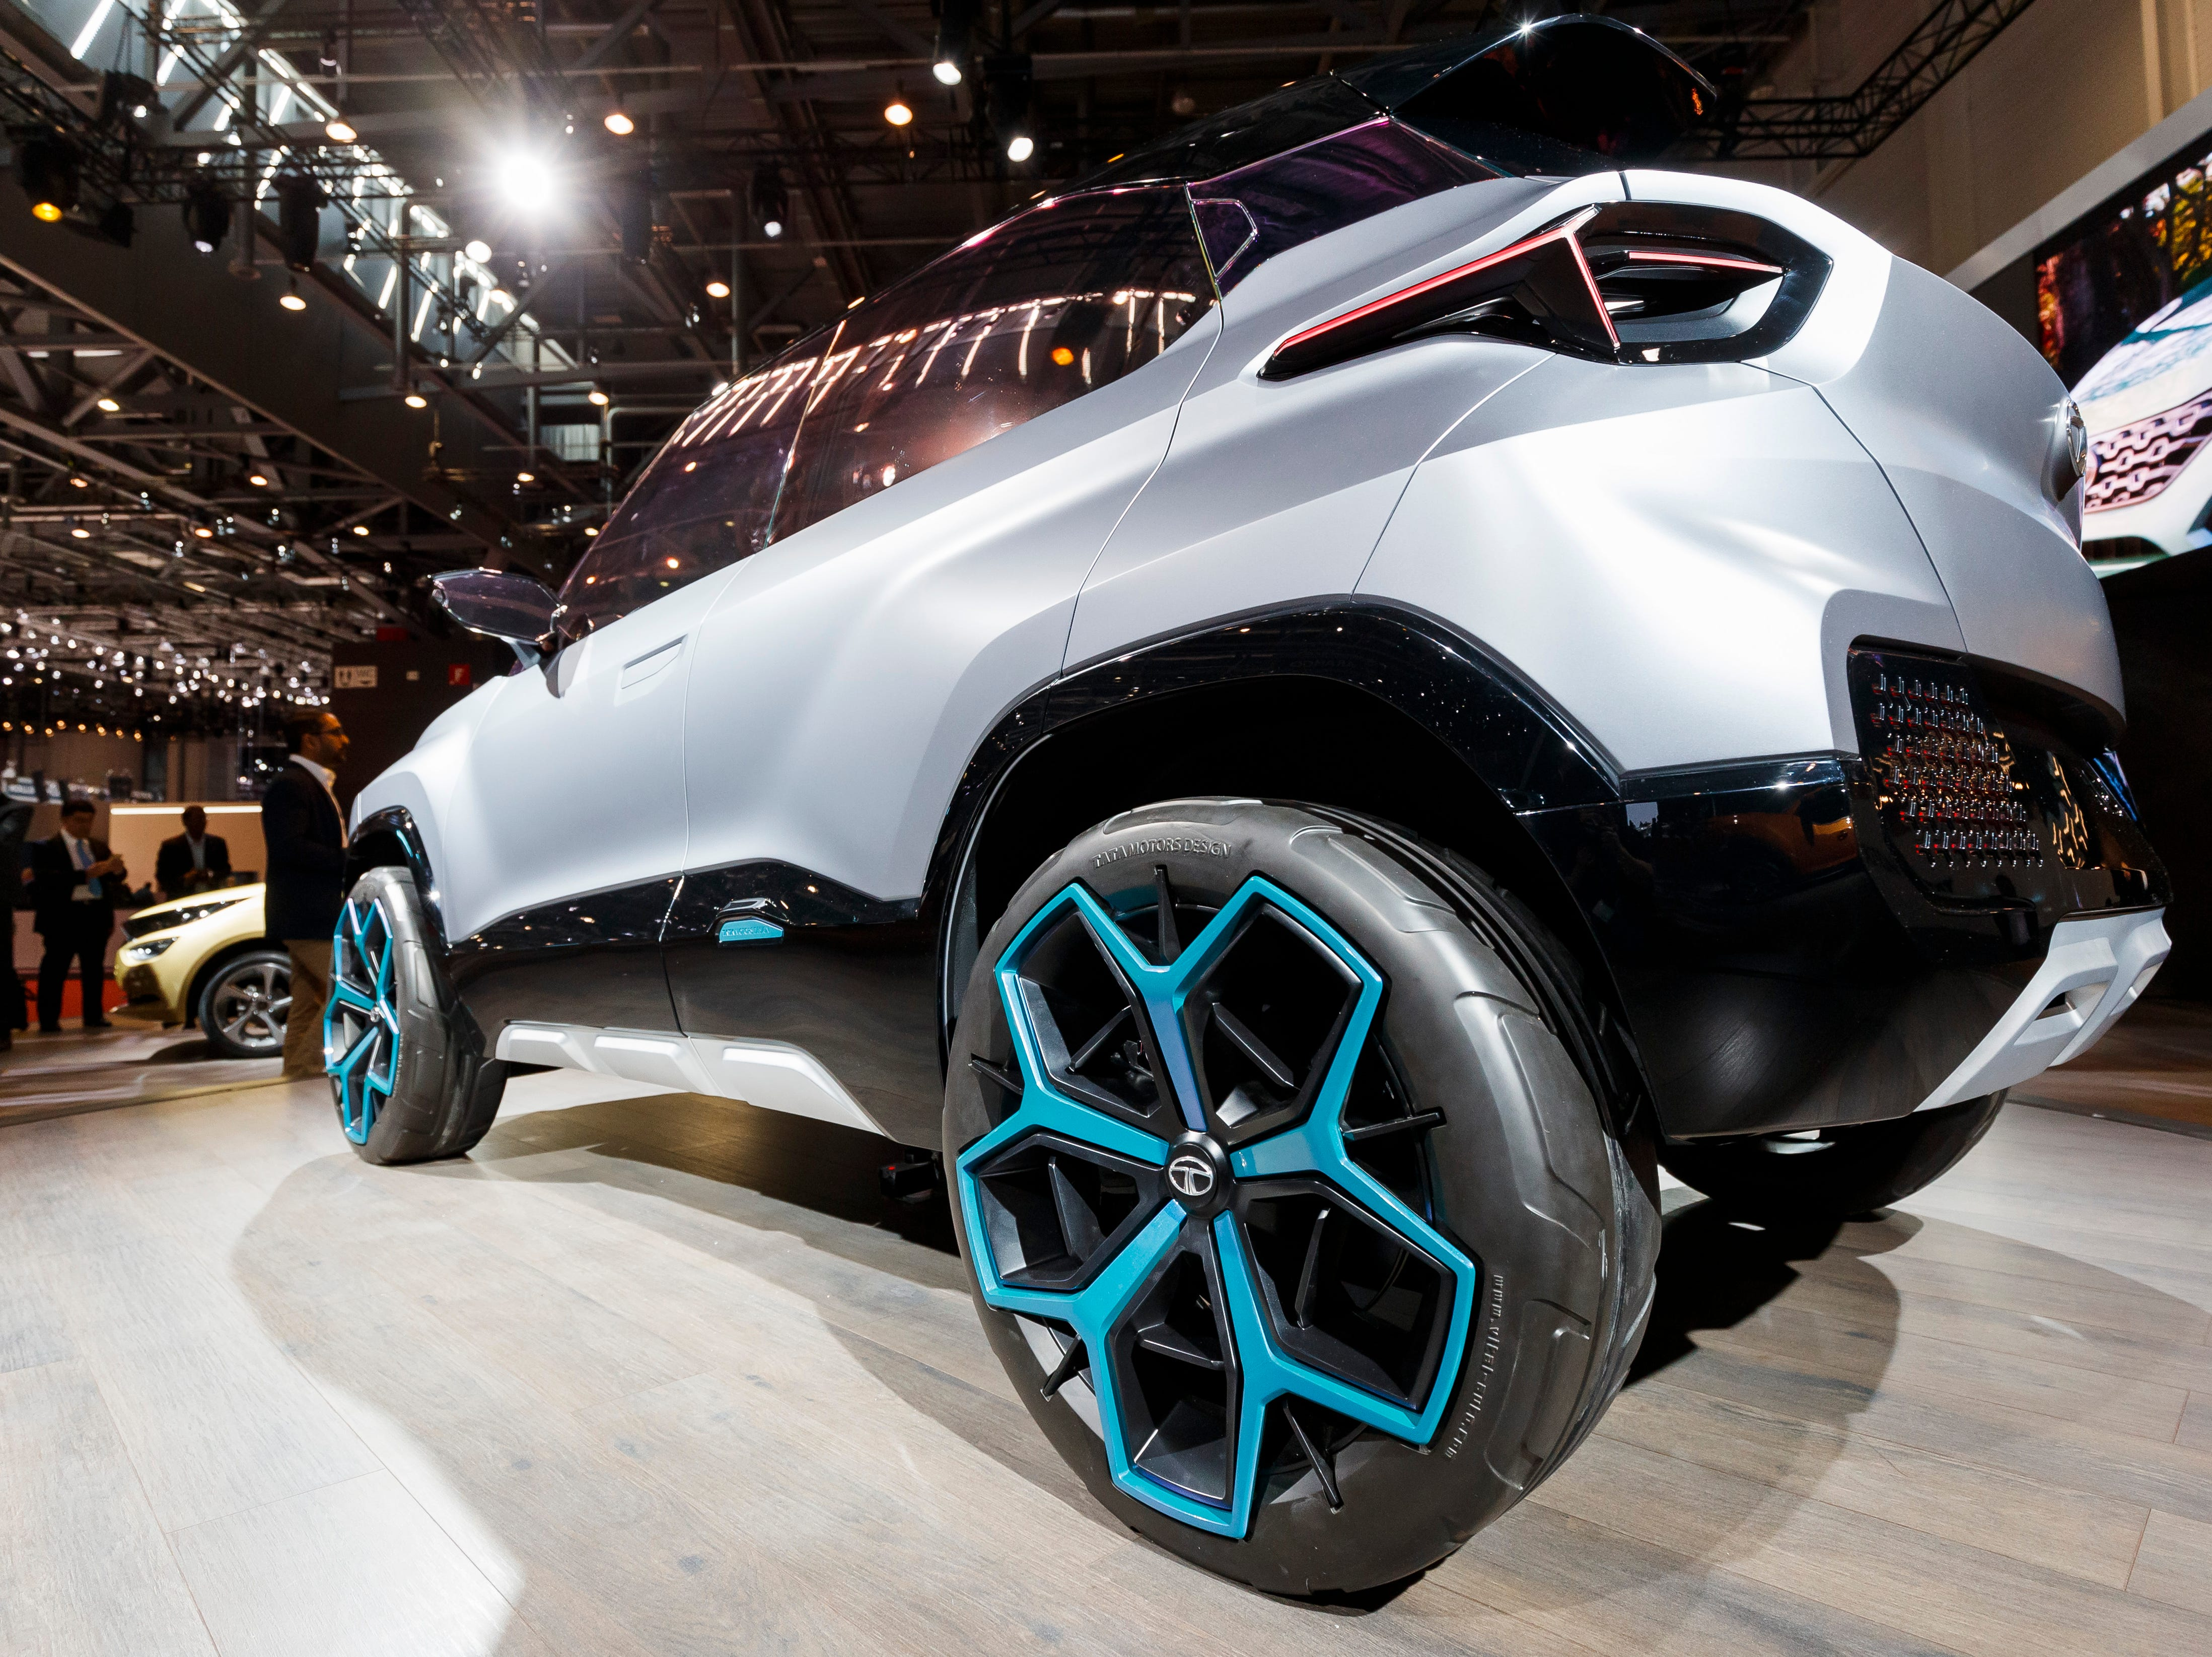 The new Tata Motors H2X concept car is introduced.